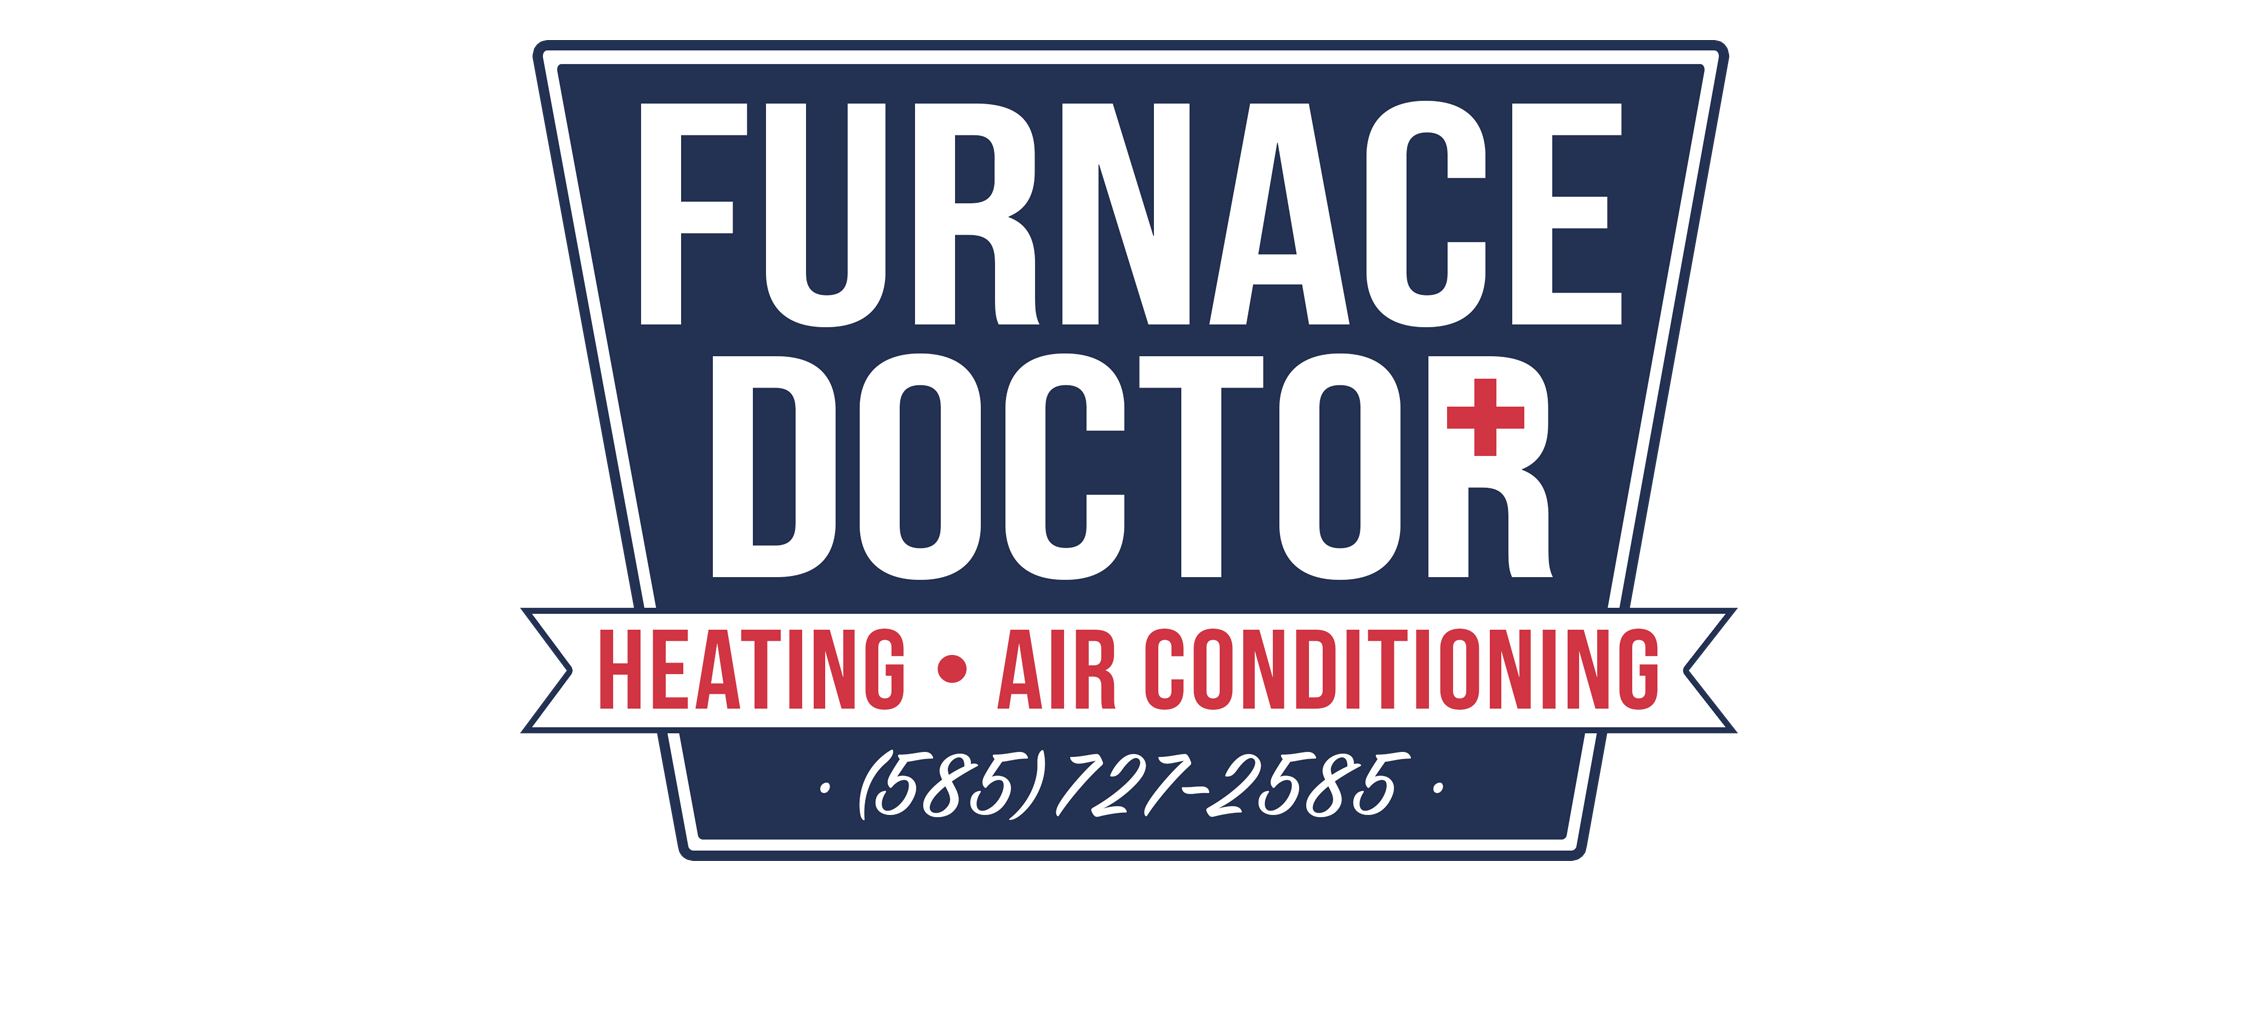 Furnace Doctor Ny Hvac Heating Amp Cooling Heating Amp Air